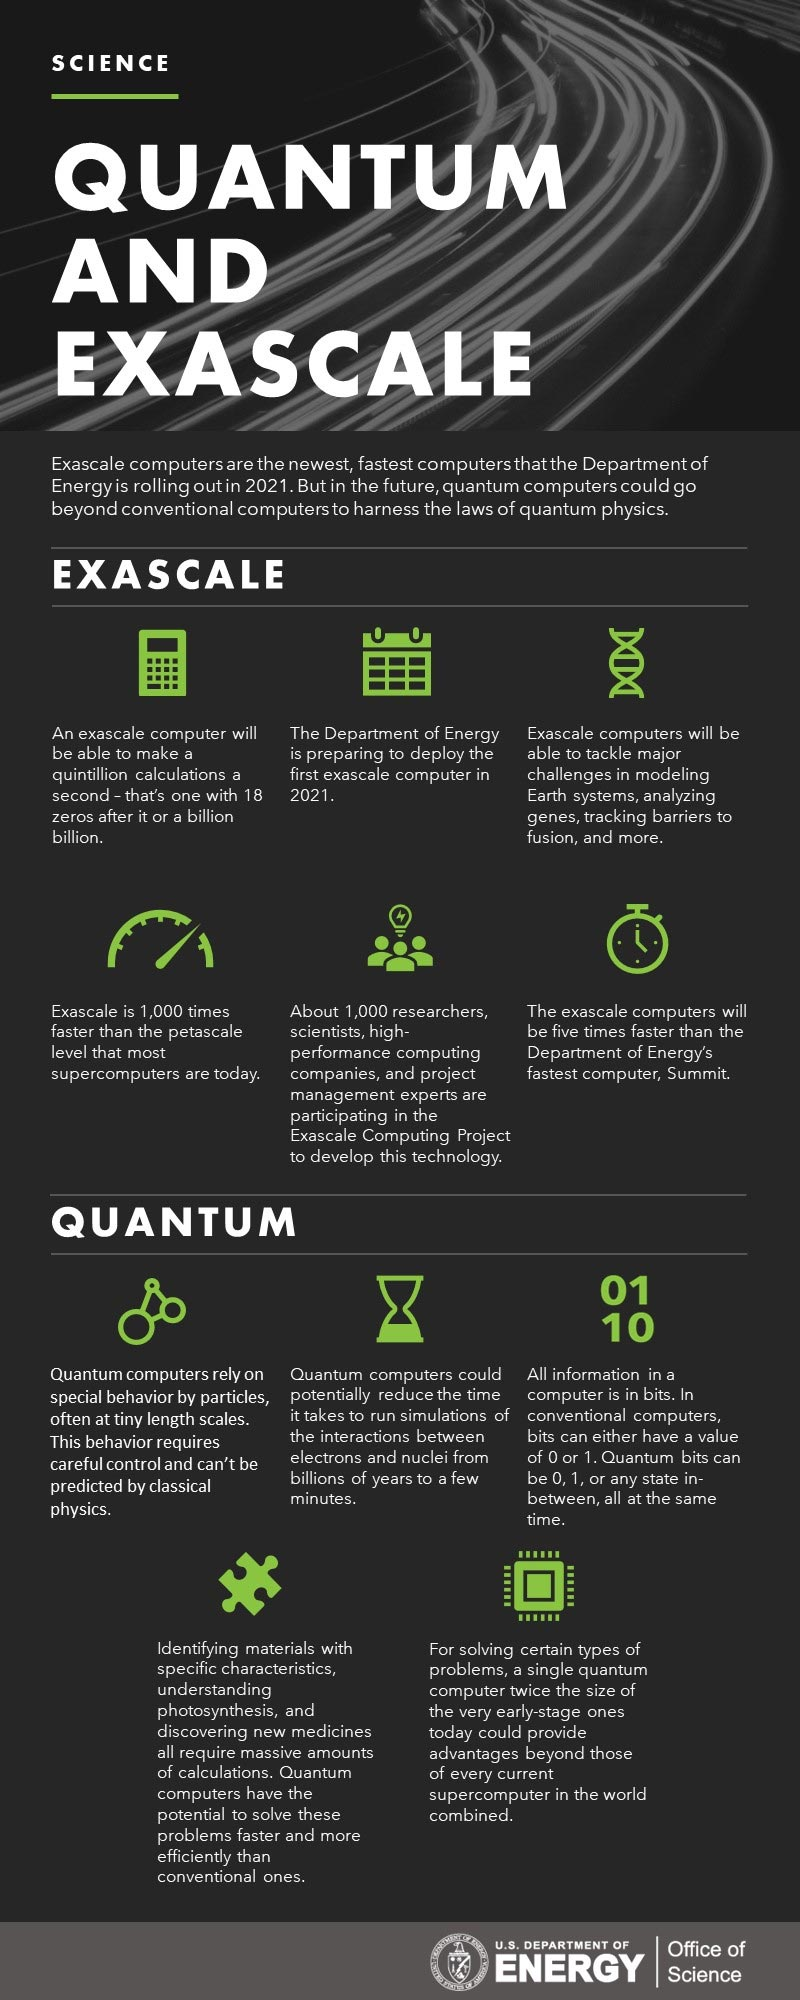 Exascale and Quantum Computers Infographic